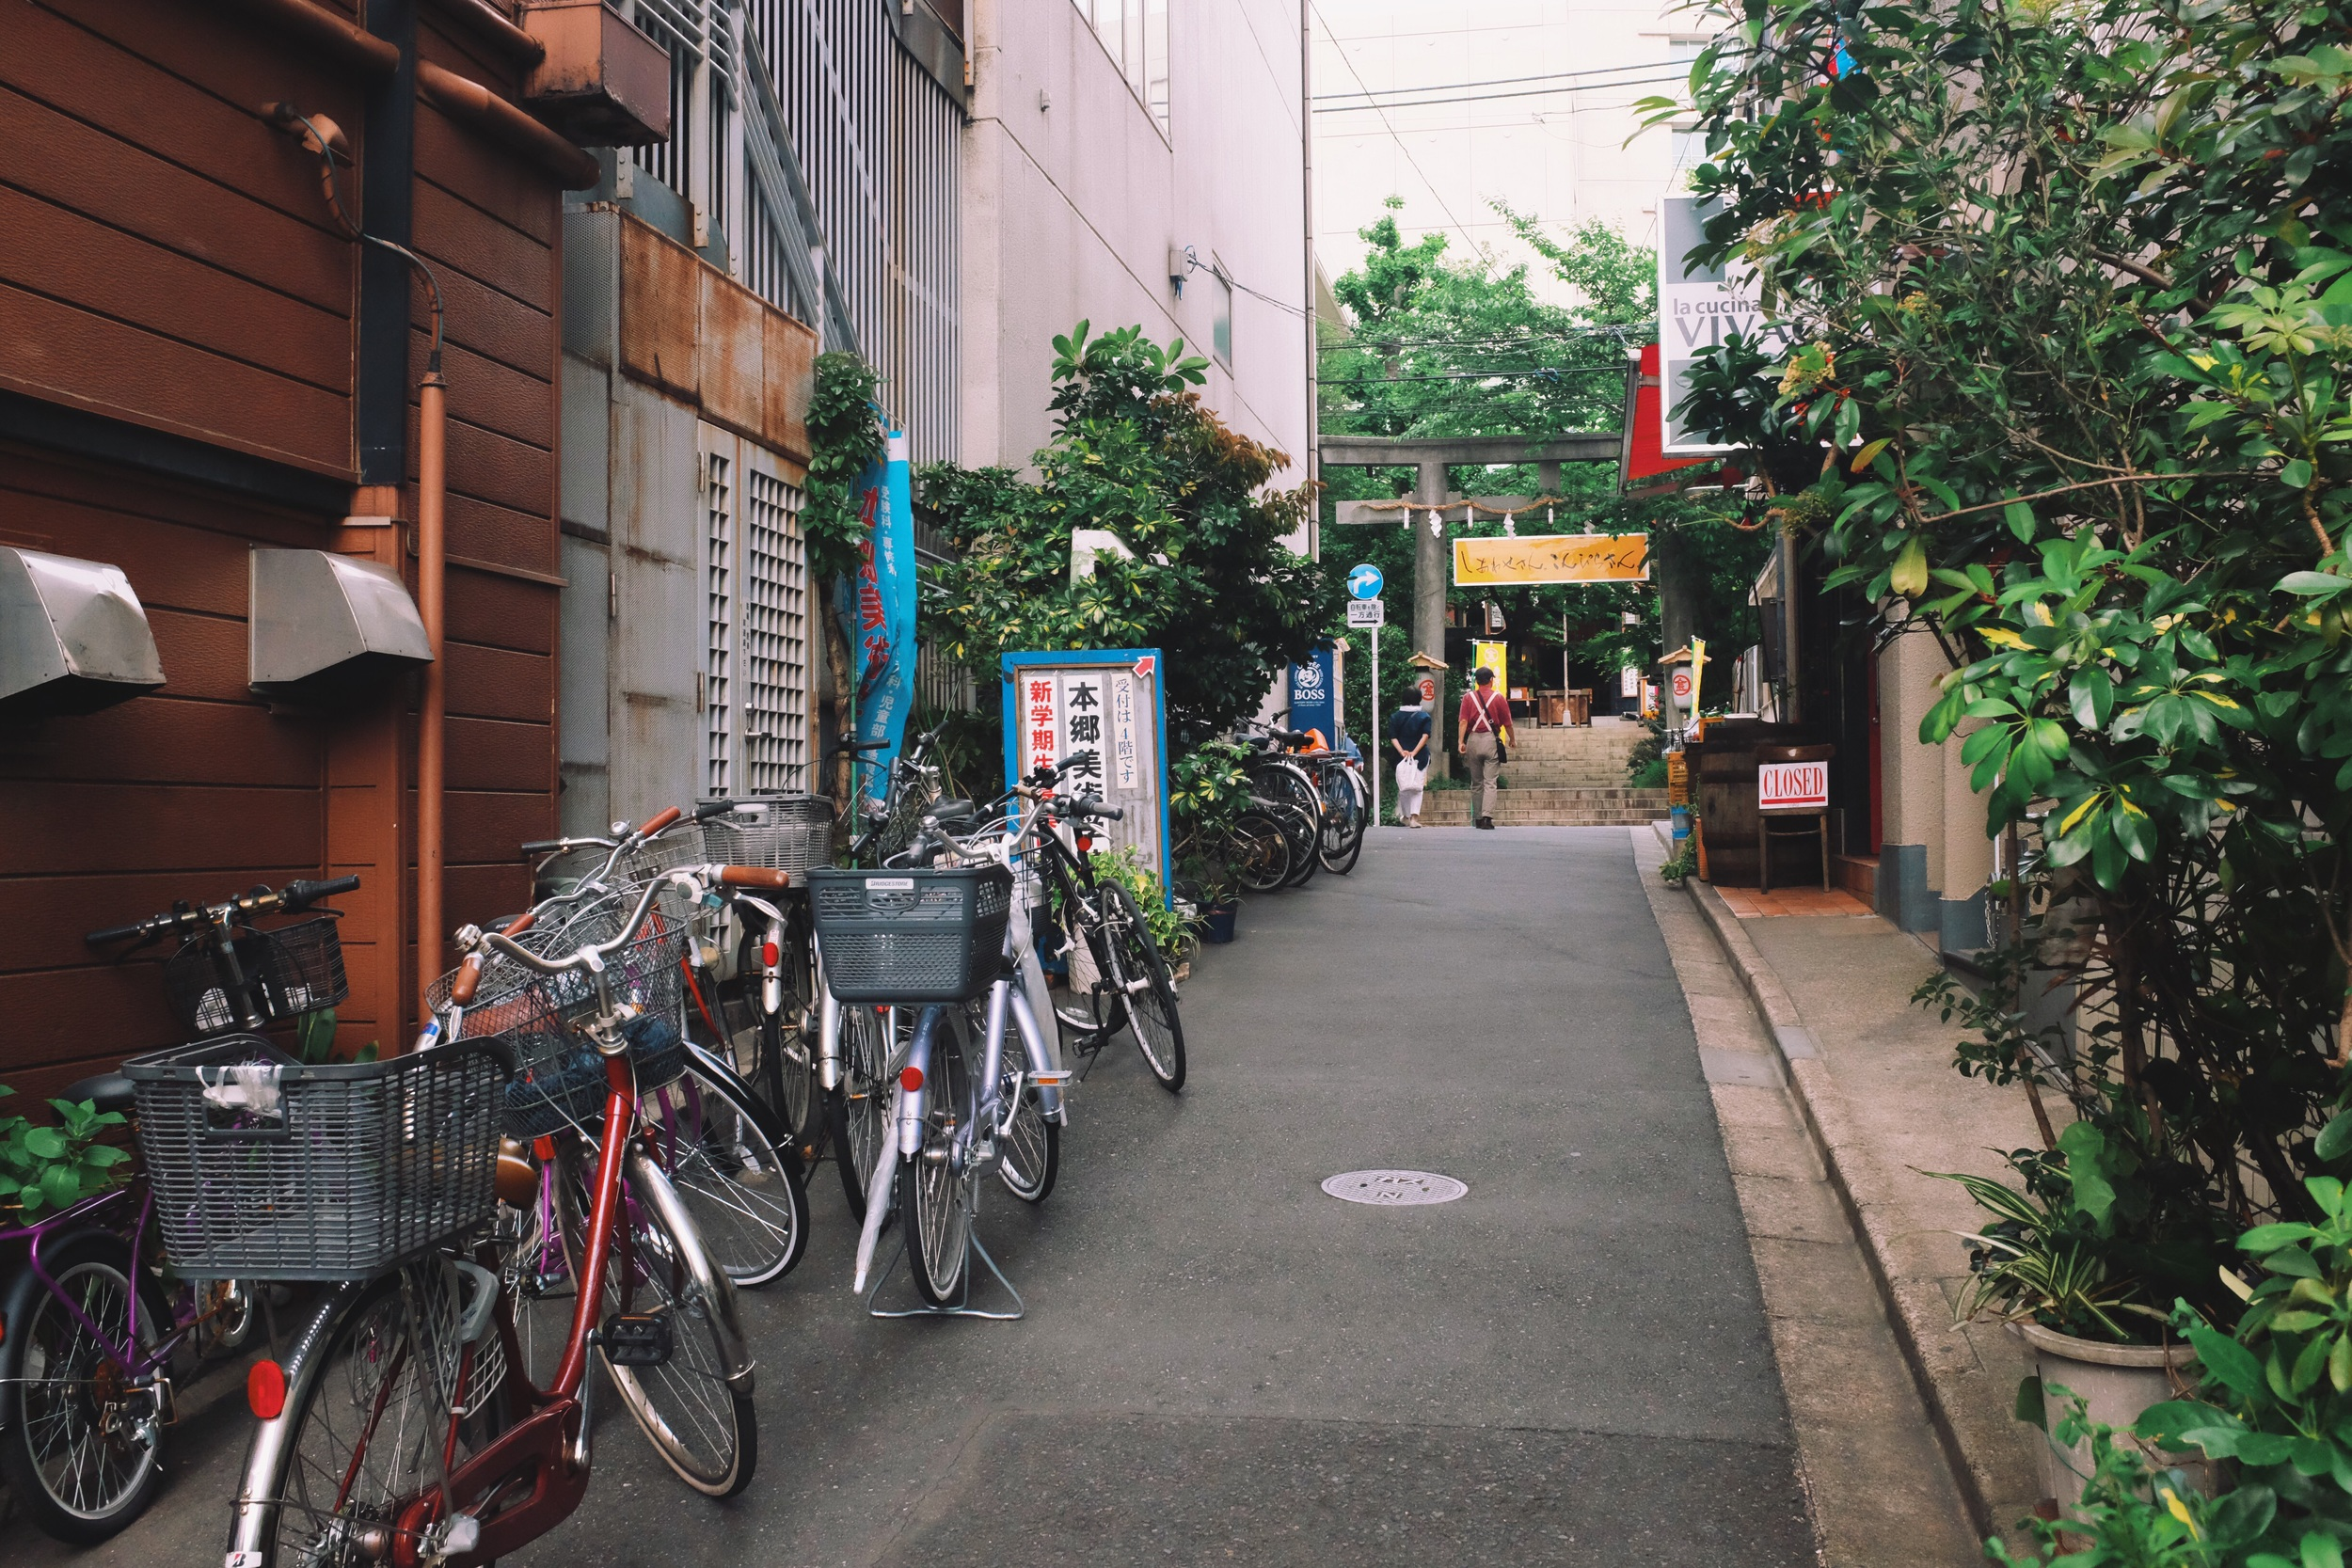 Small alleyway leading to a shrine outsideTokyo Dome - Fujifilm x100t, ISO5000, f/8, 1/60 sec. Processed in VSCO.